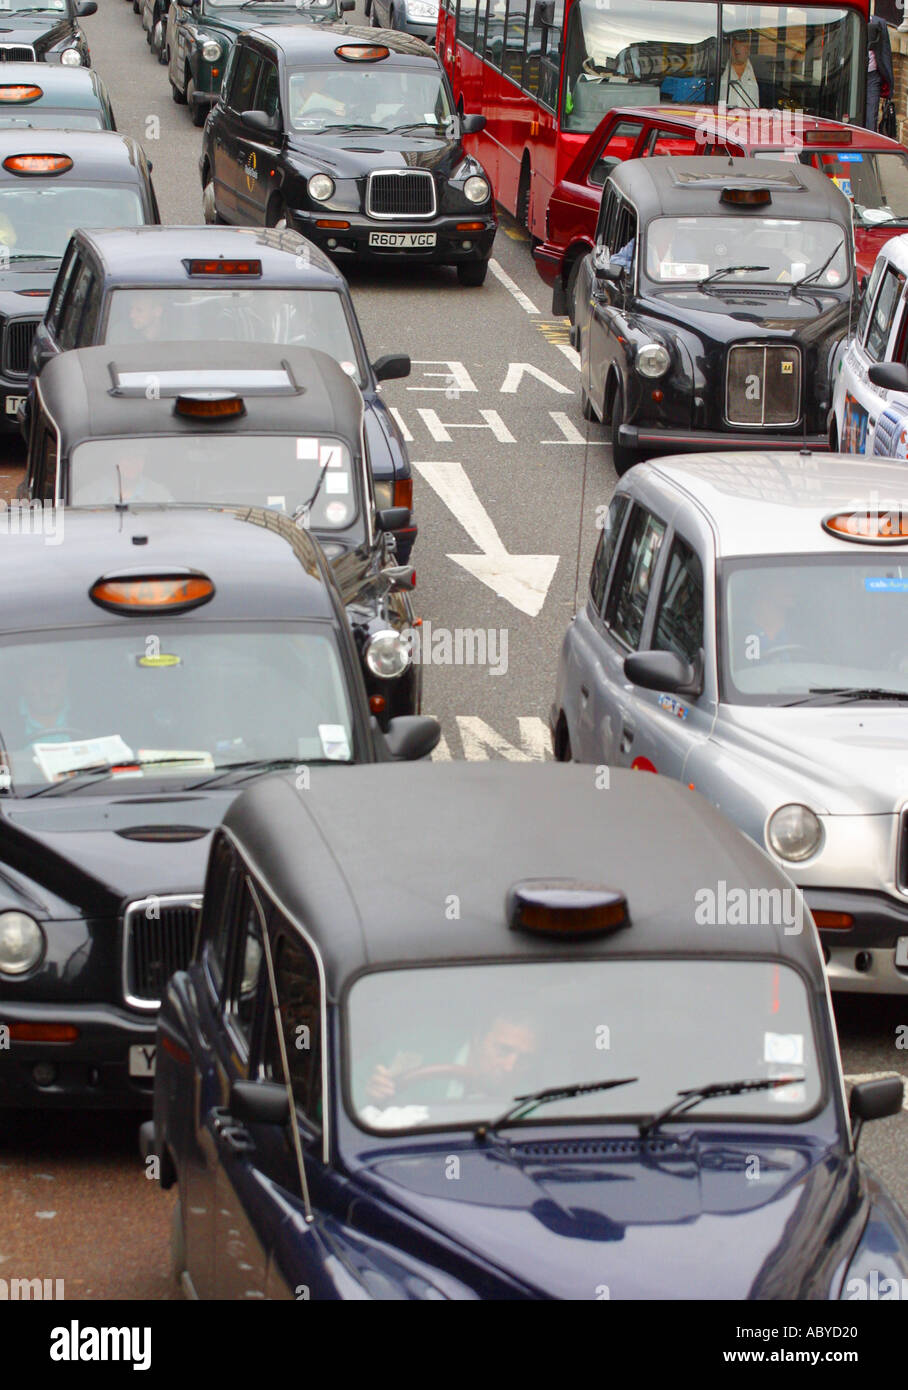 London traffic vehicle congestion traffic jam of London taxis and buses - Stock Image